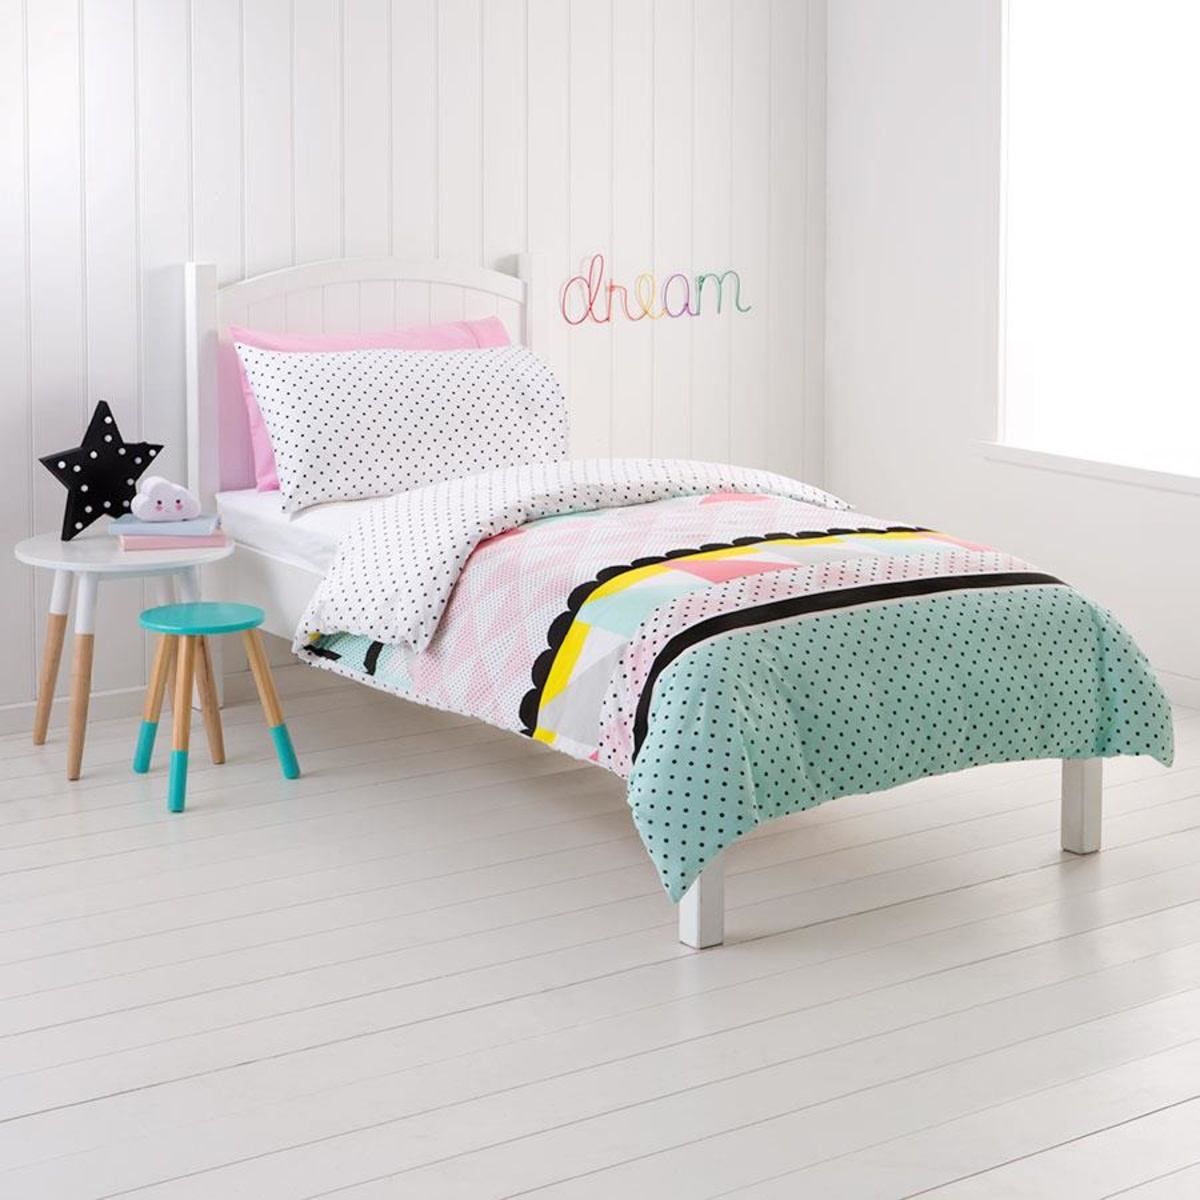 Kmart Bed Sets | Kmart Website | Superhero Bedding